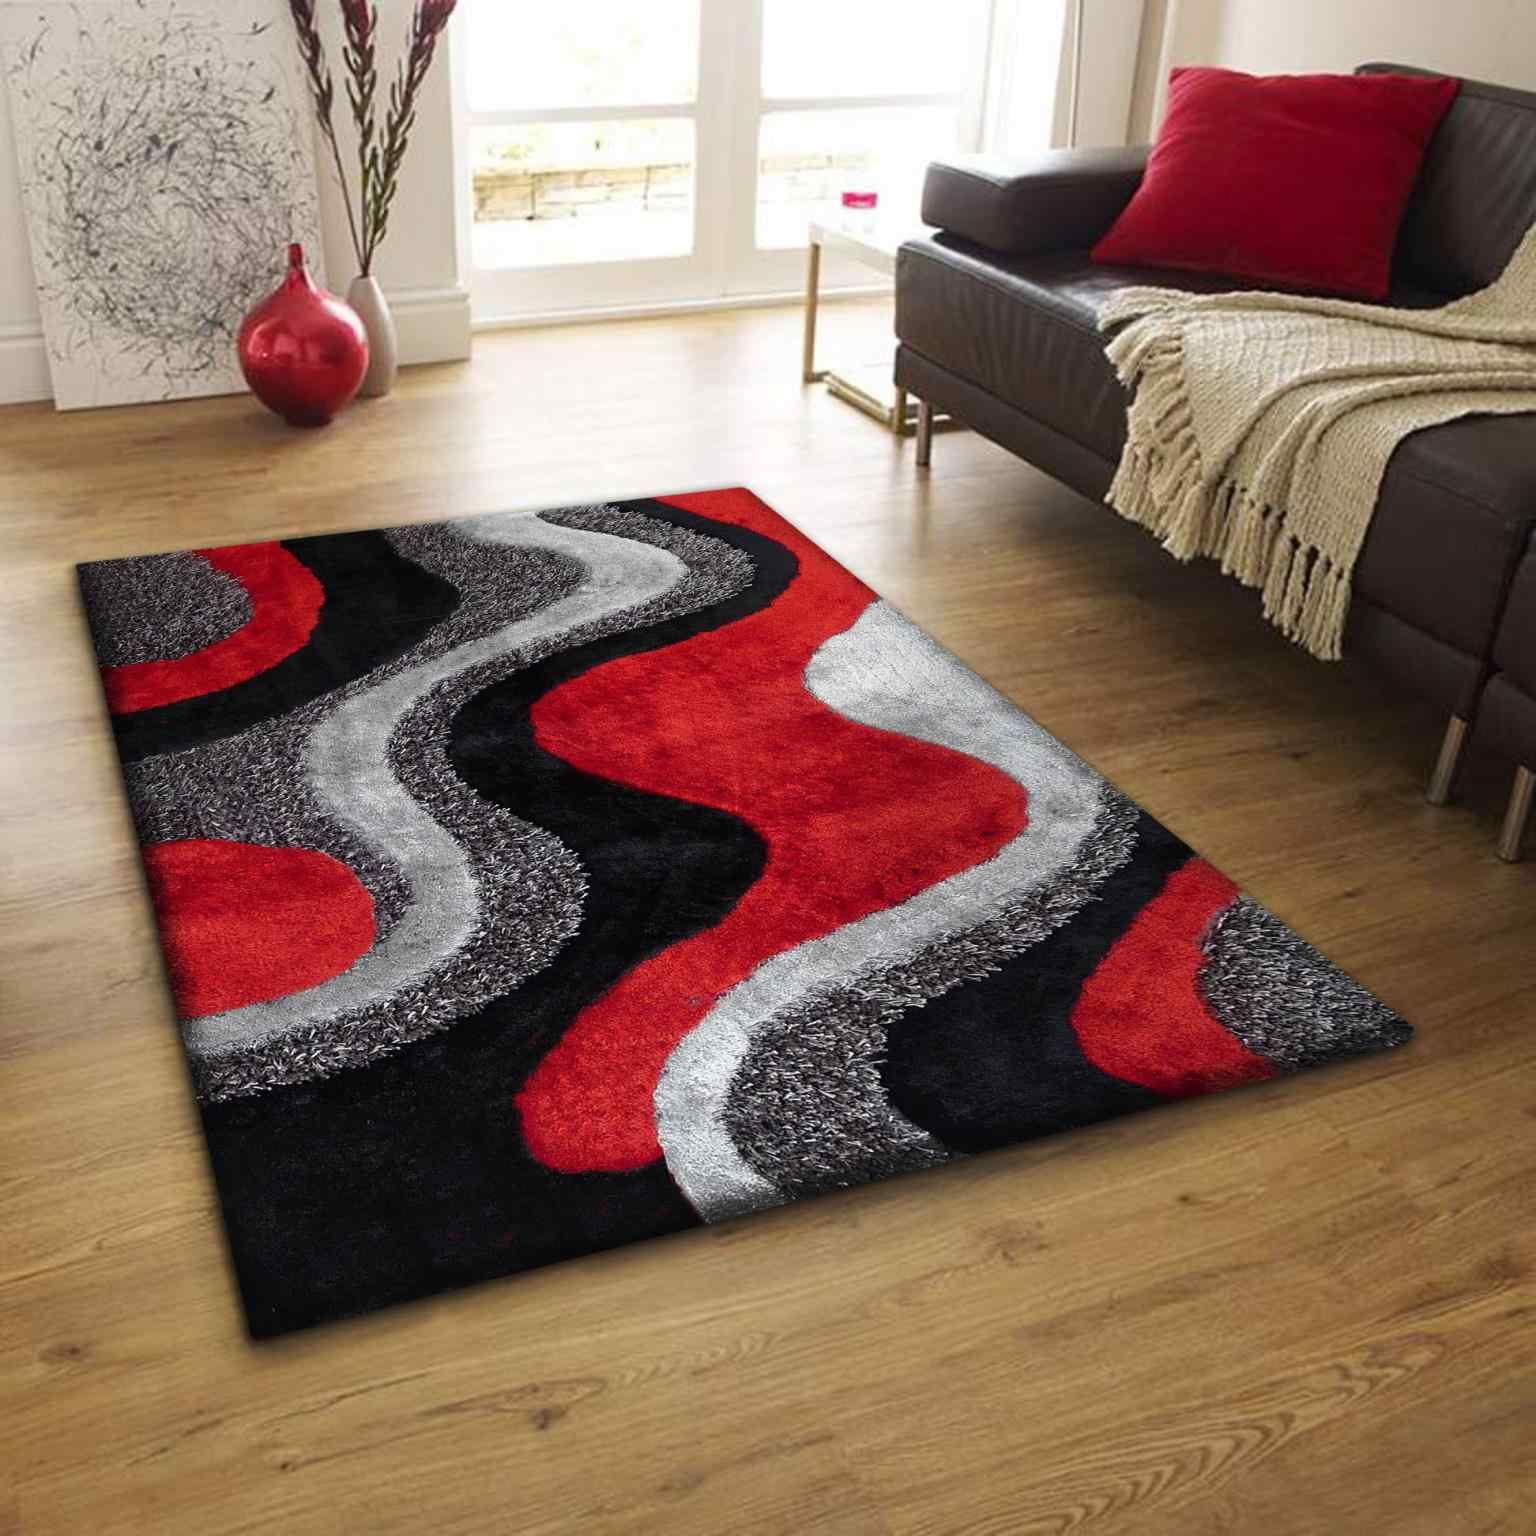 Large Fluffy Rugs